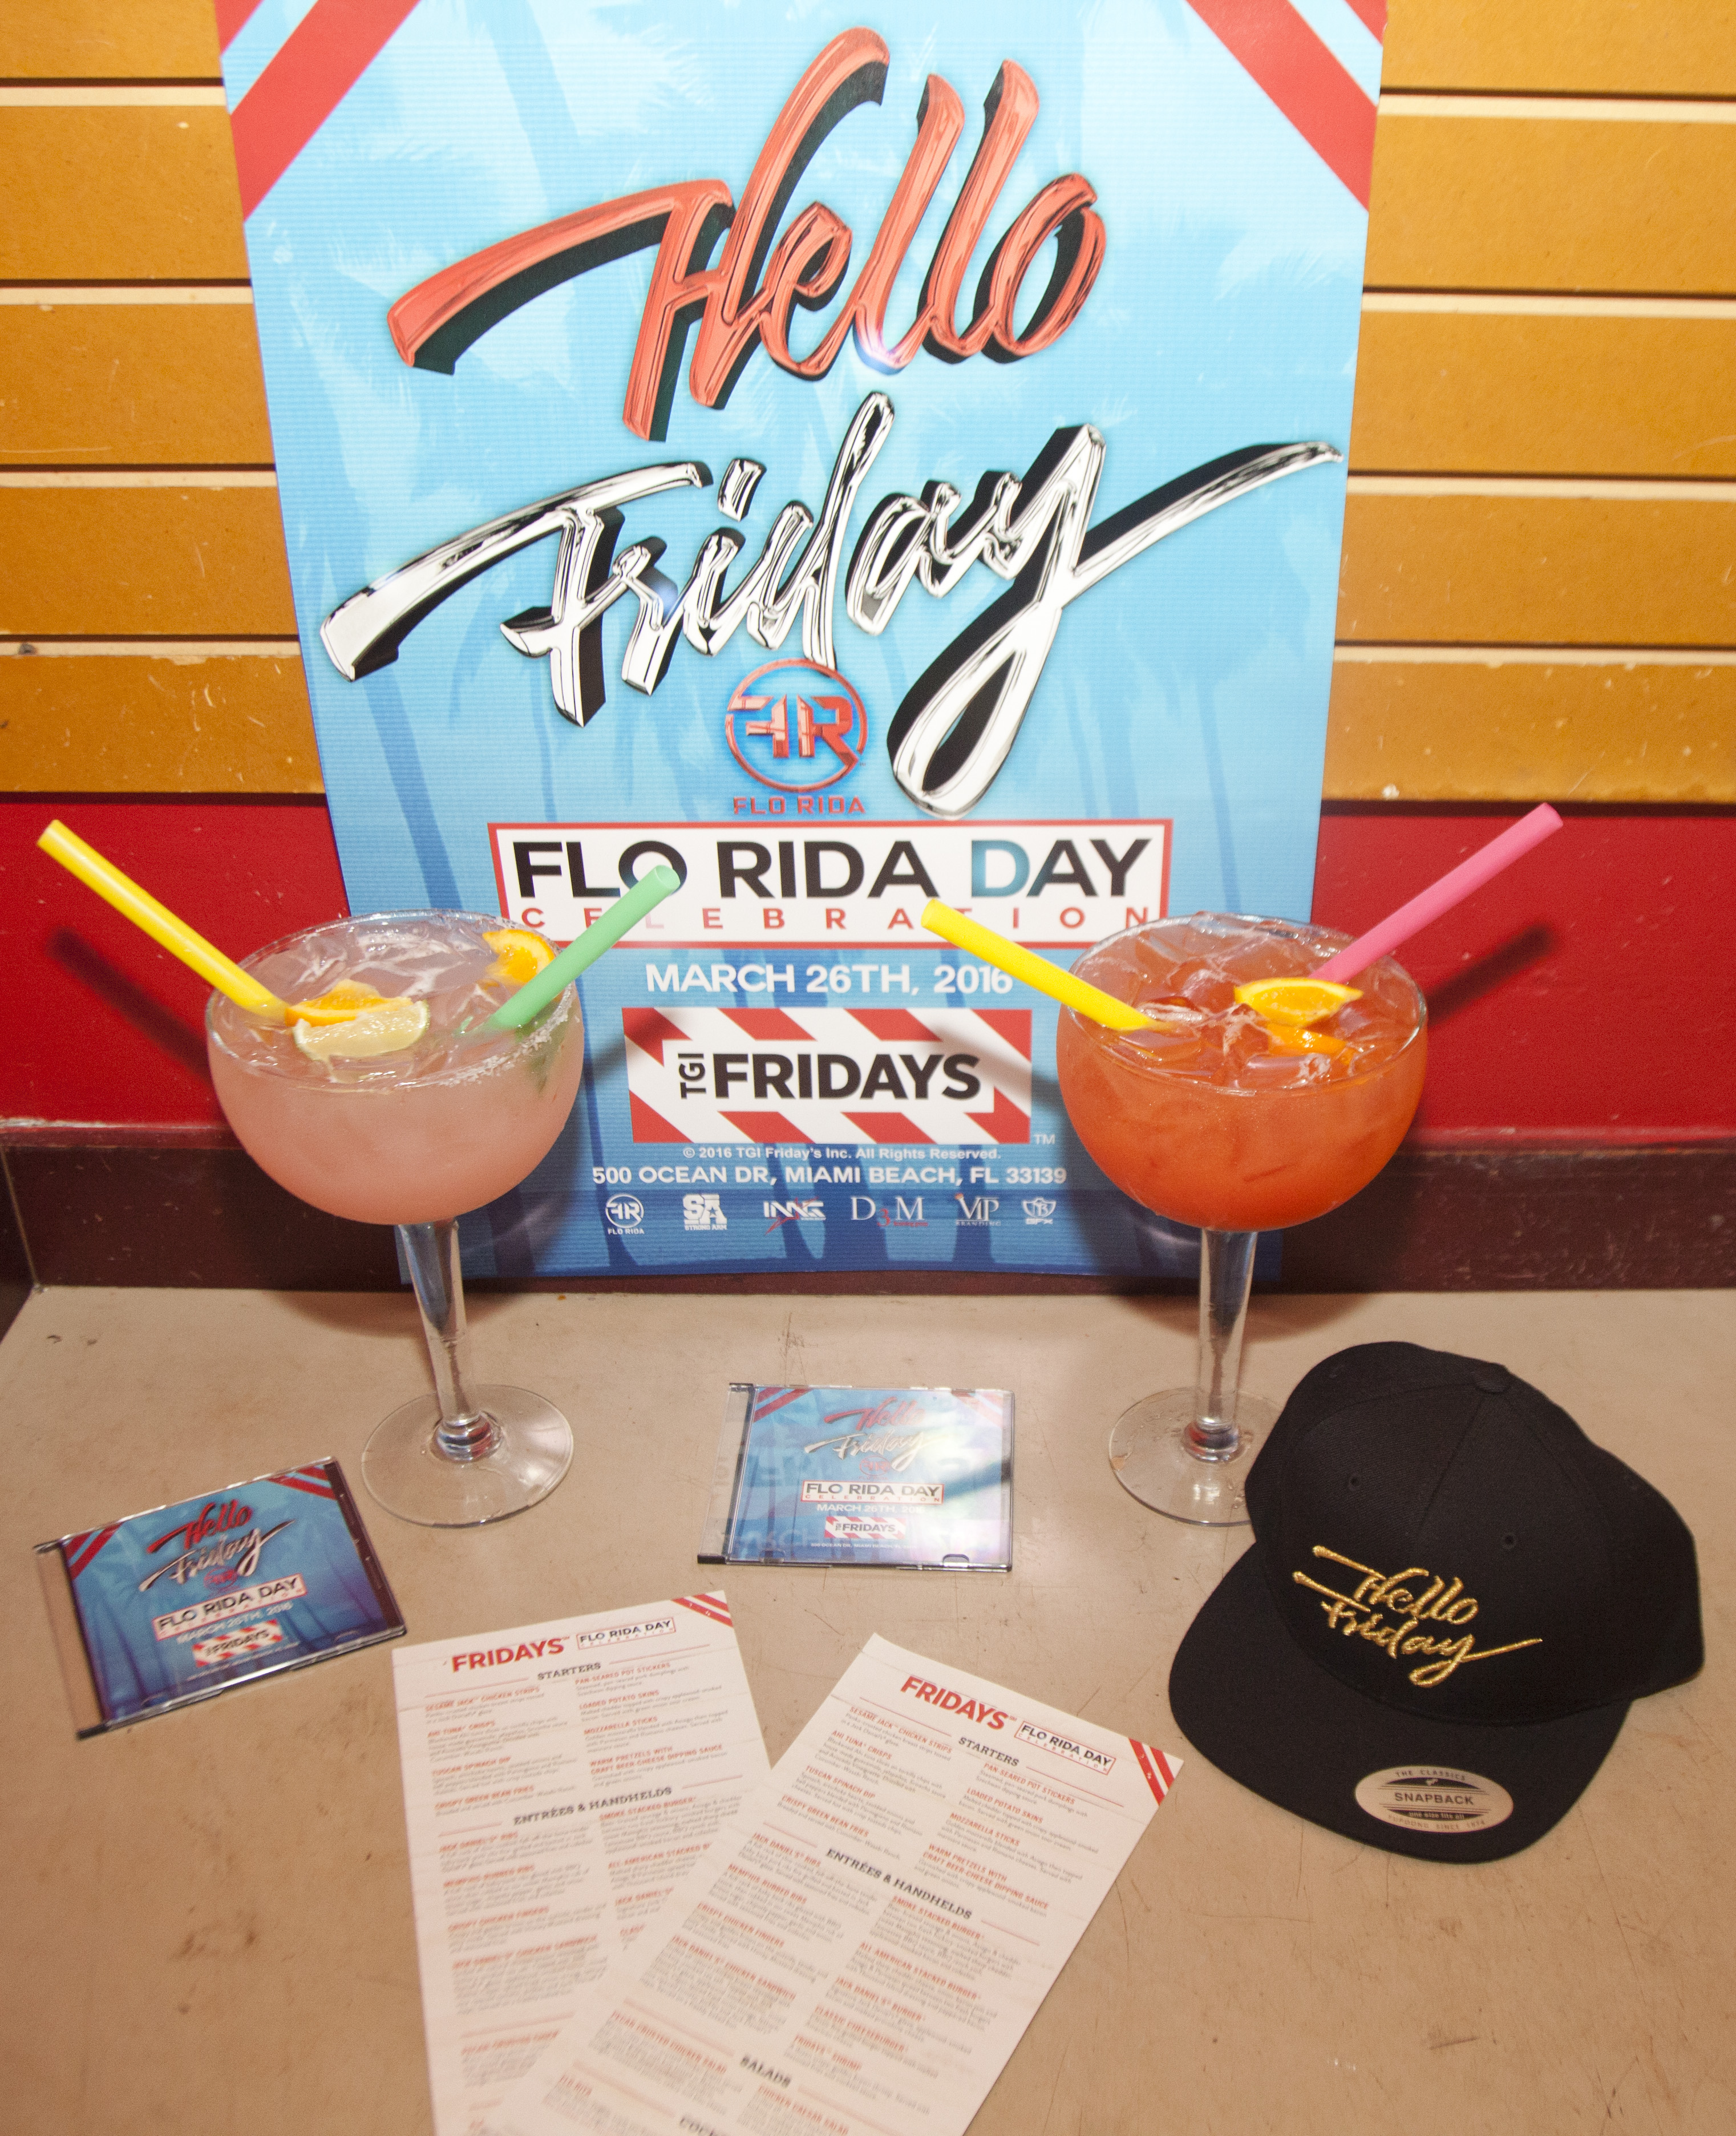 Flo-Rita Specialty Drinks - Flo Rida Day in Miami Beach - TGI Fridays